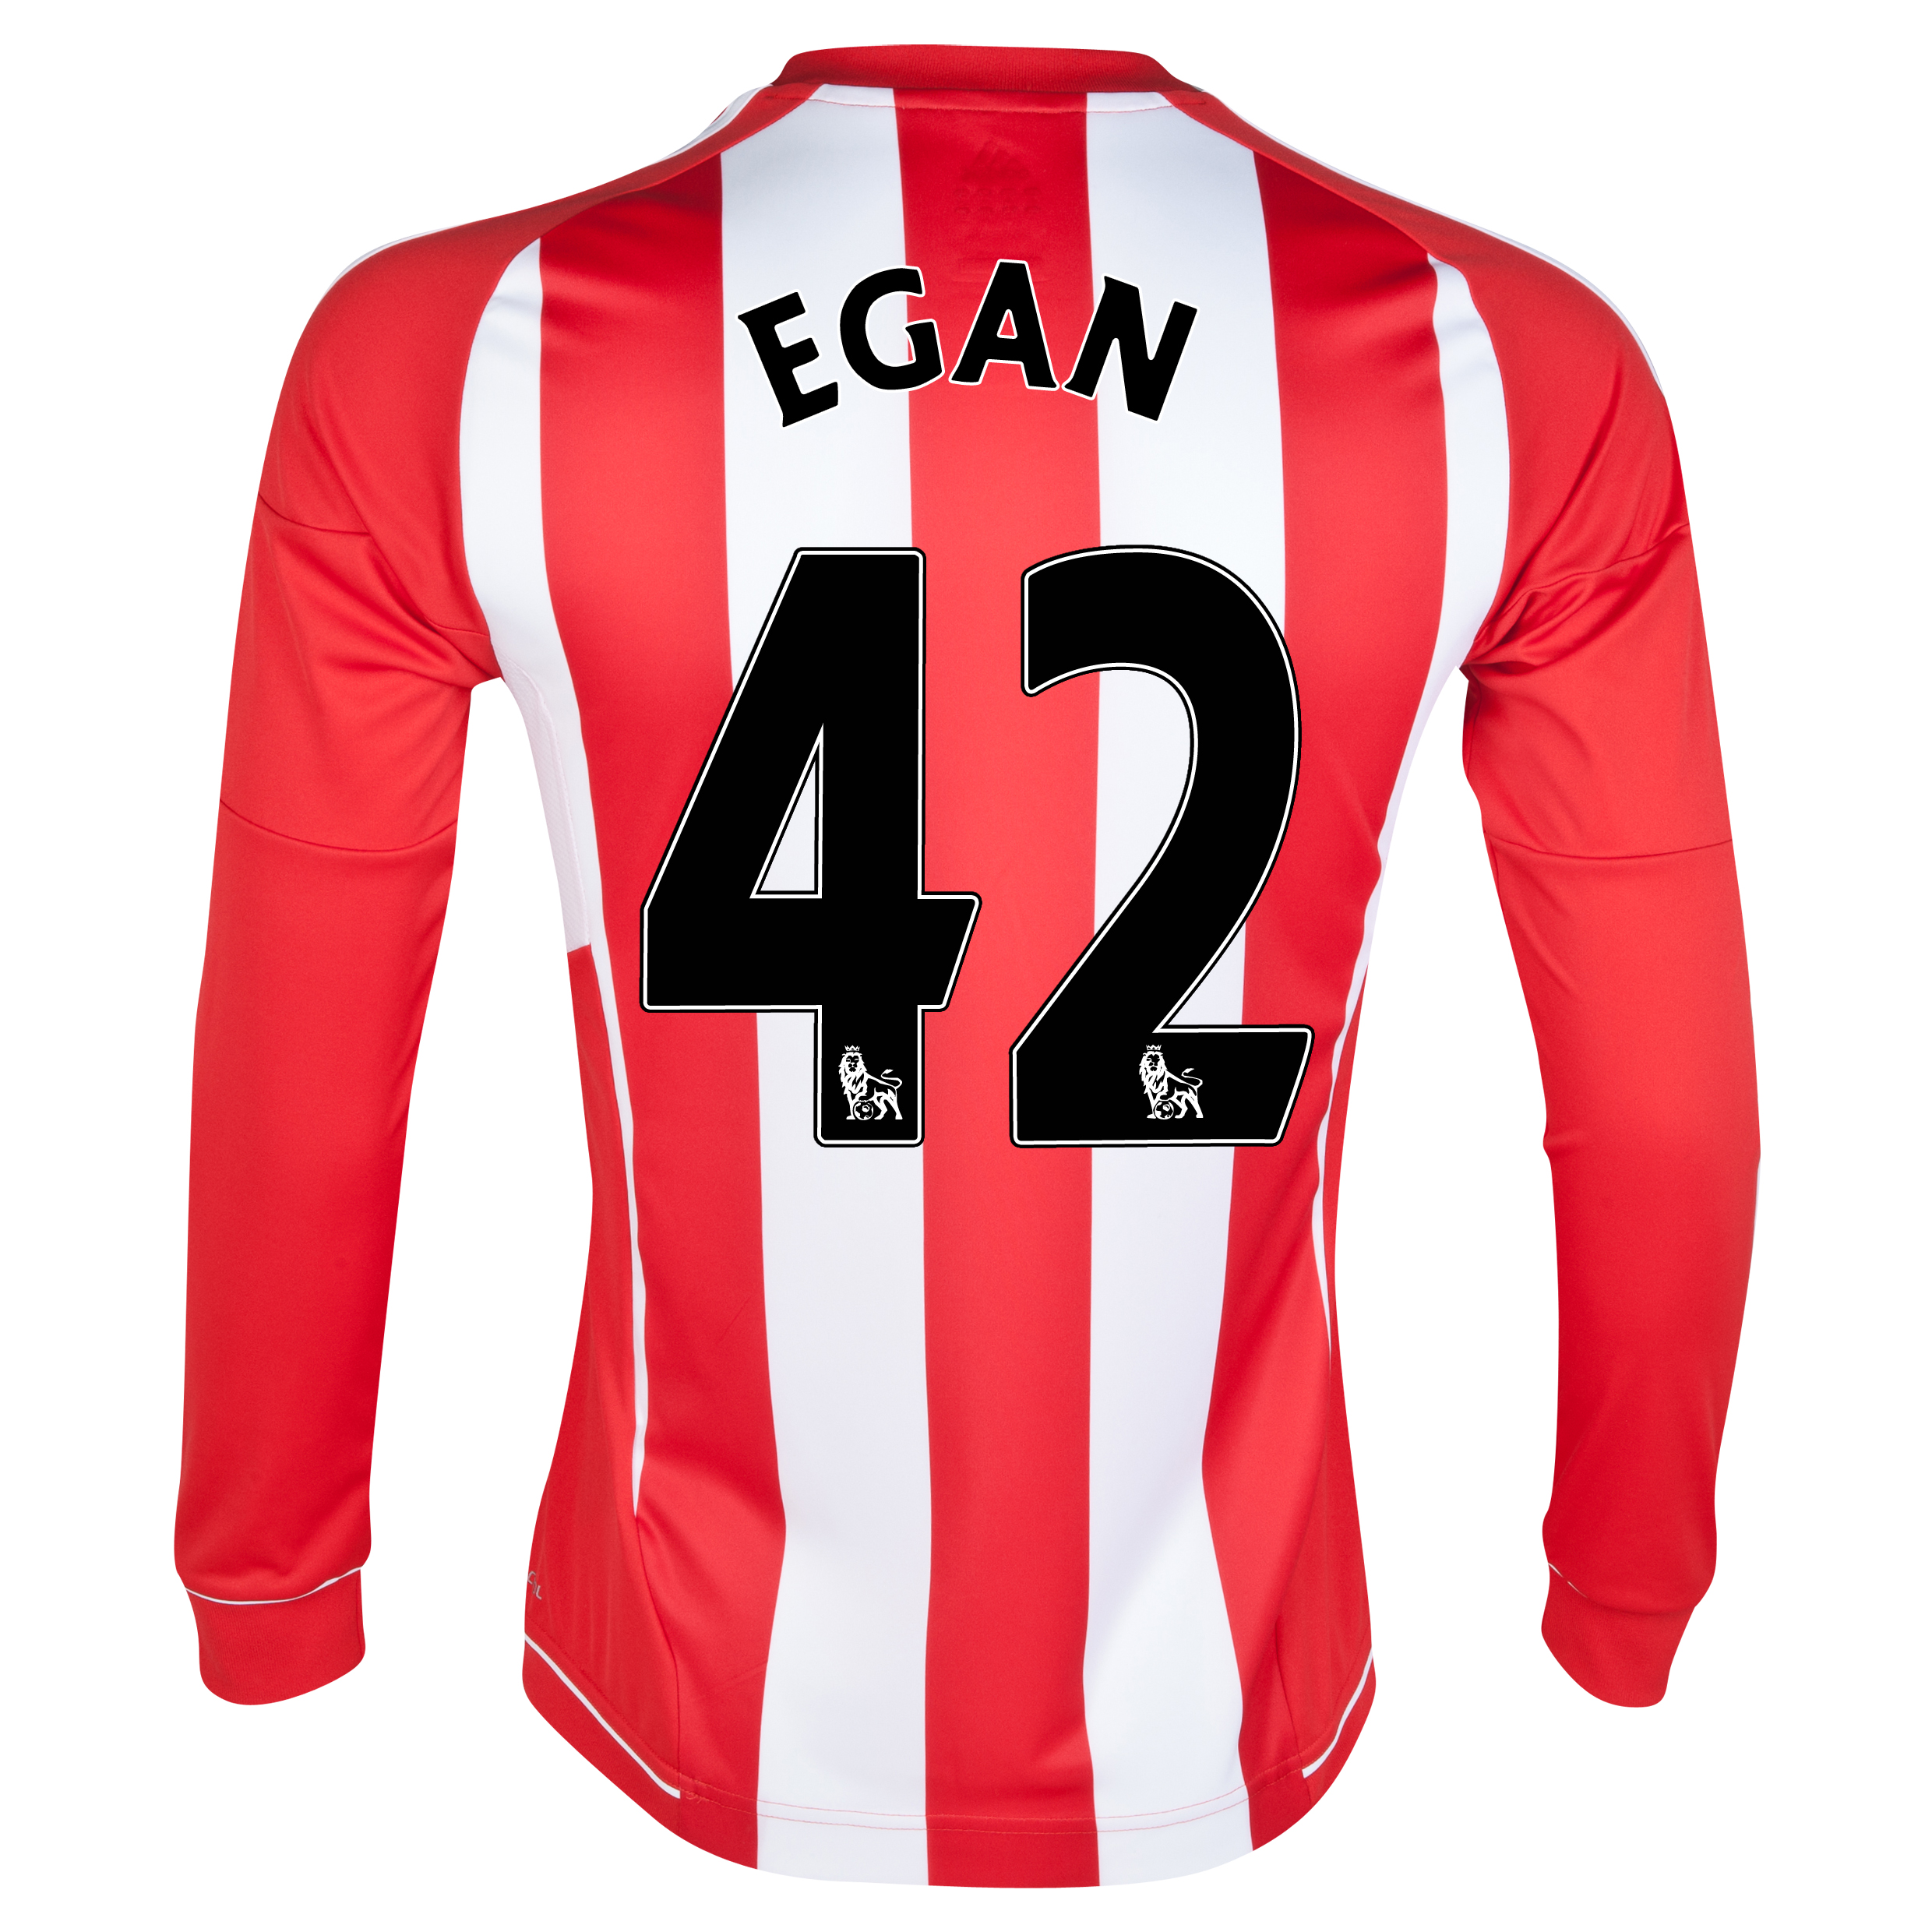 Sunderland Home Shirt 2012/13 - Long Sleeved - Junior with Egan 42 printing